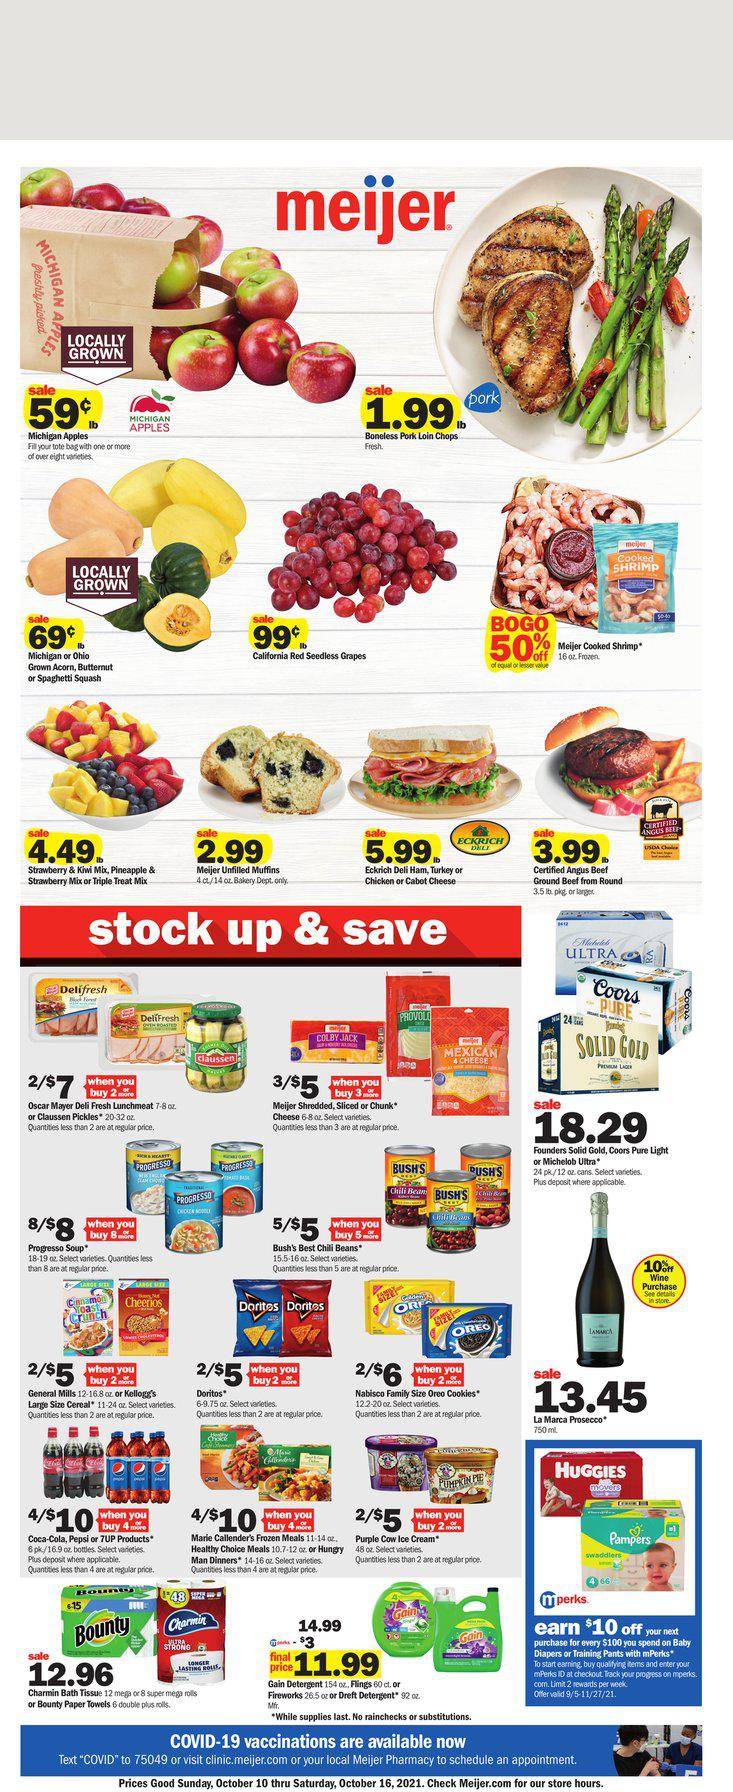 10.10.2021 Meijer ad 1. page